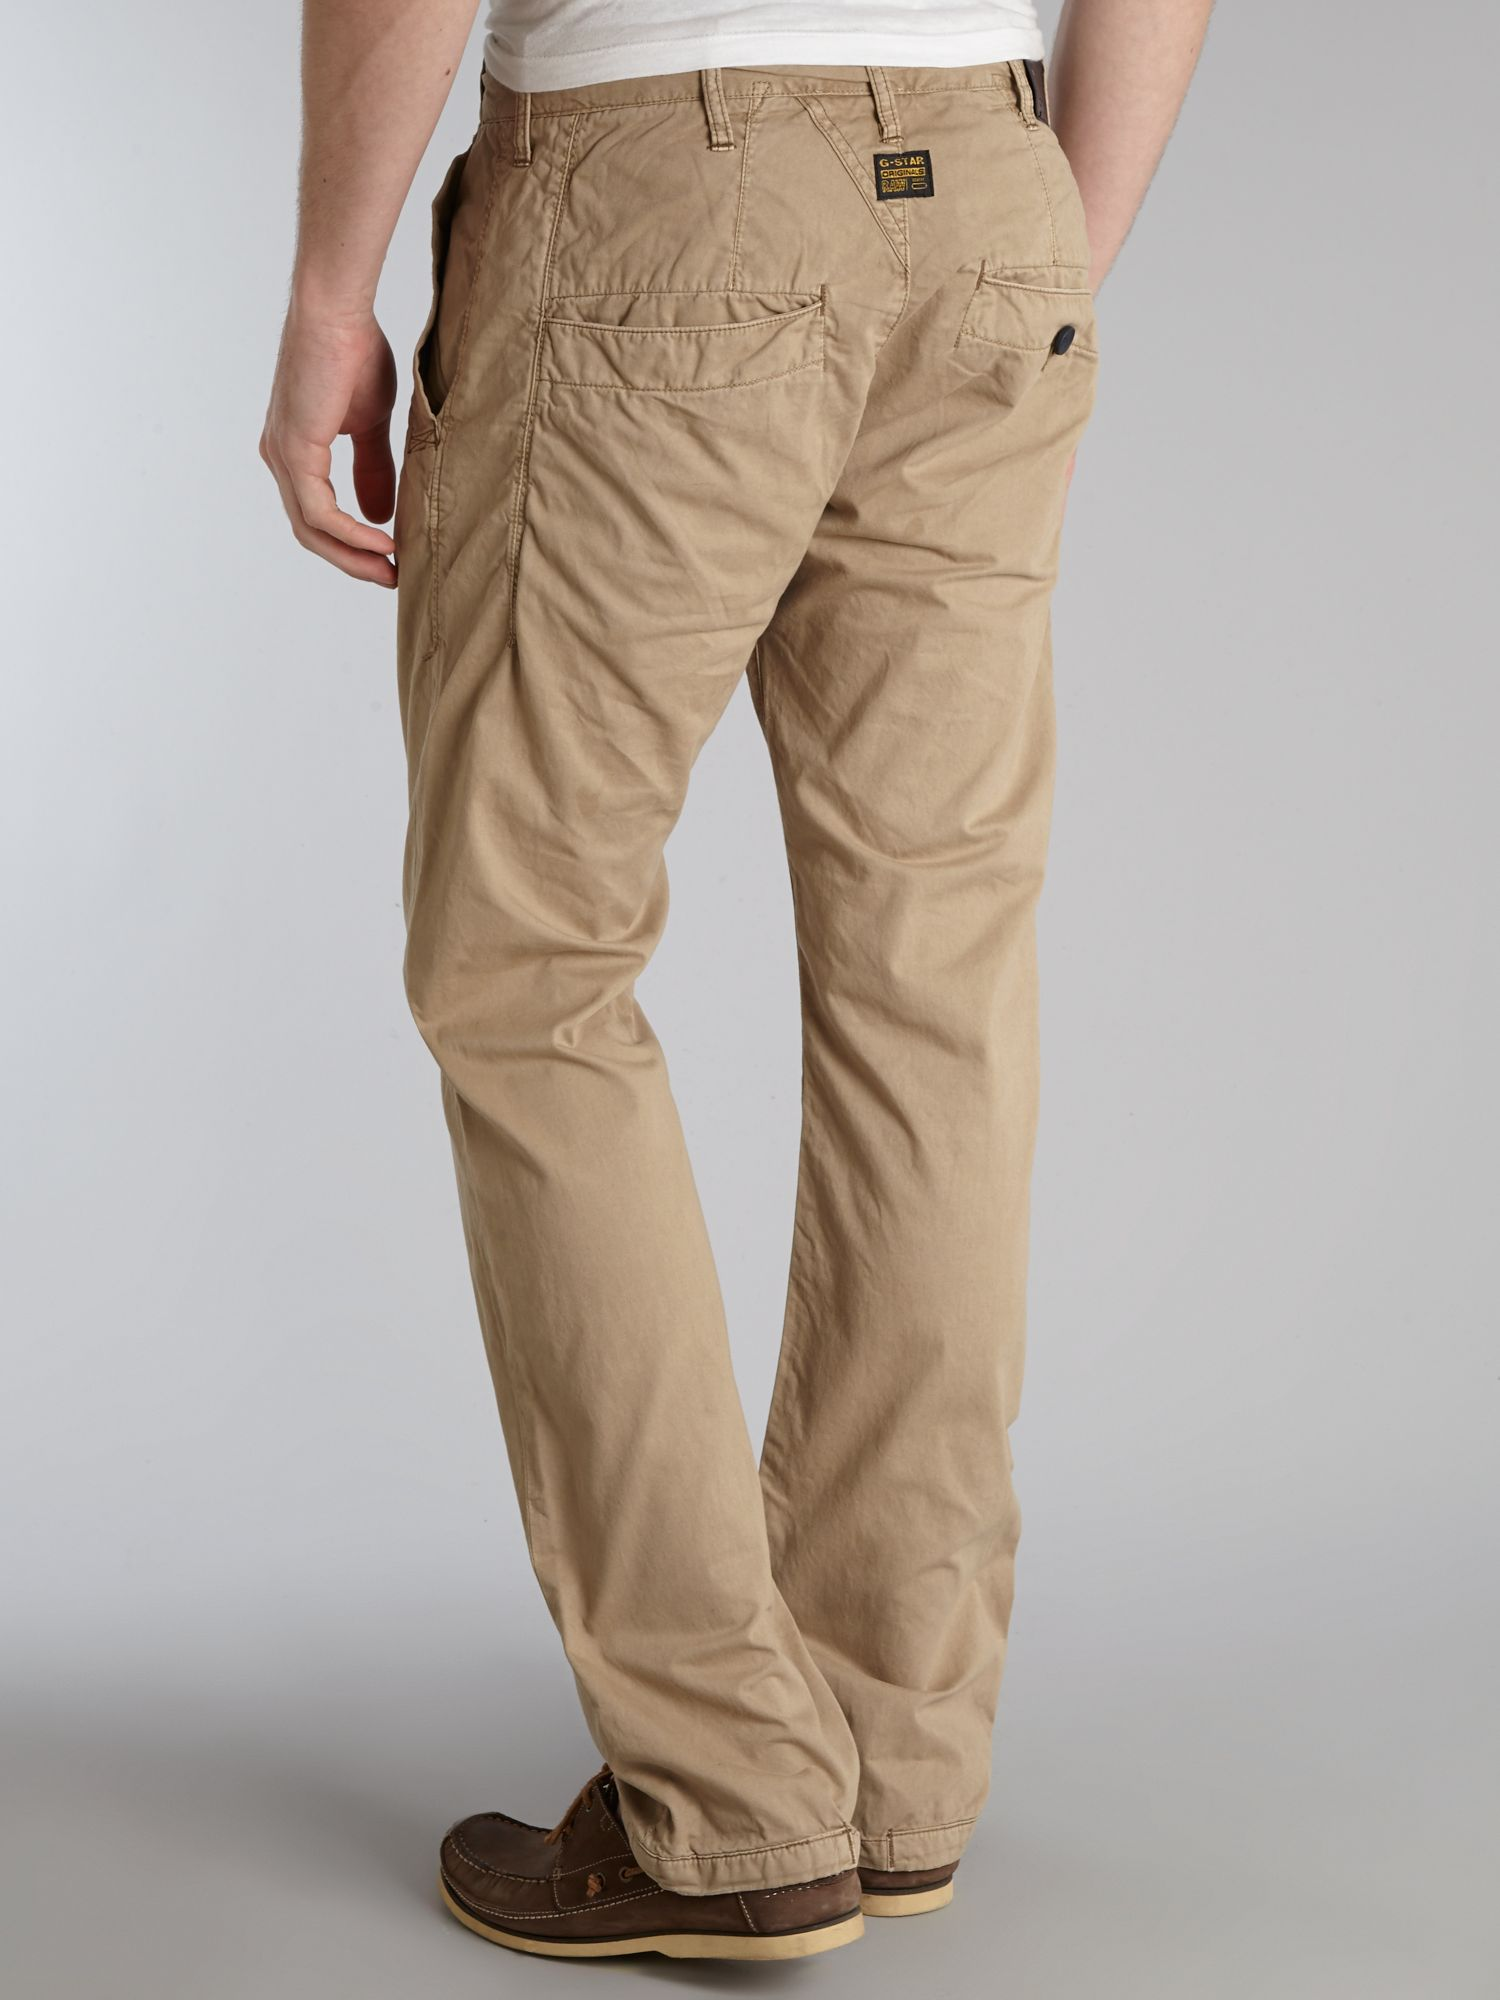 g star raw tapered chino in natural for men lyst. Black Bedroom Furniture Sets. Home Design Ideas